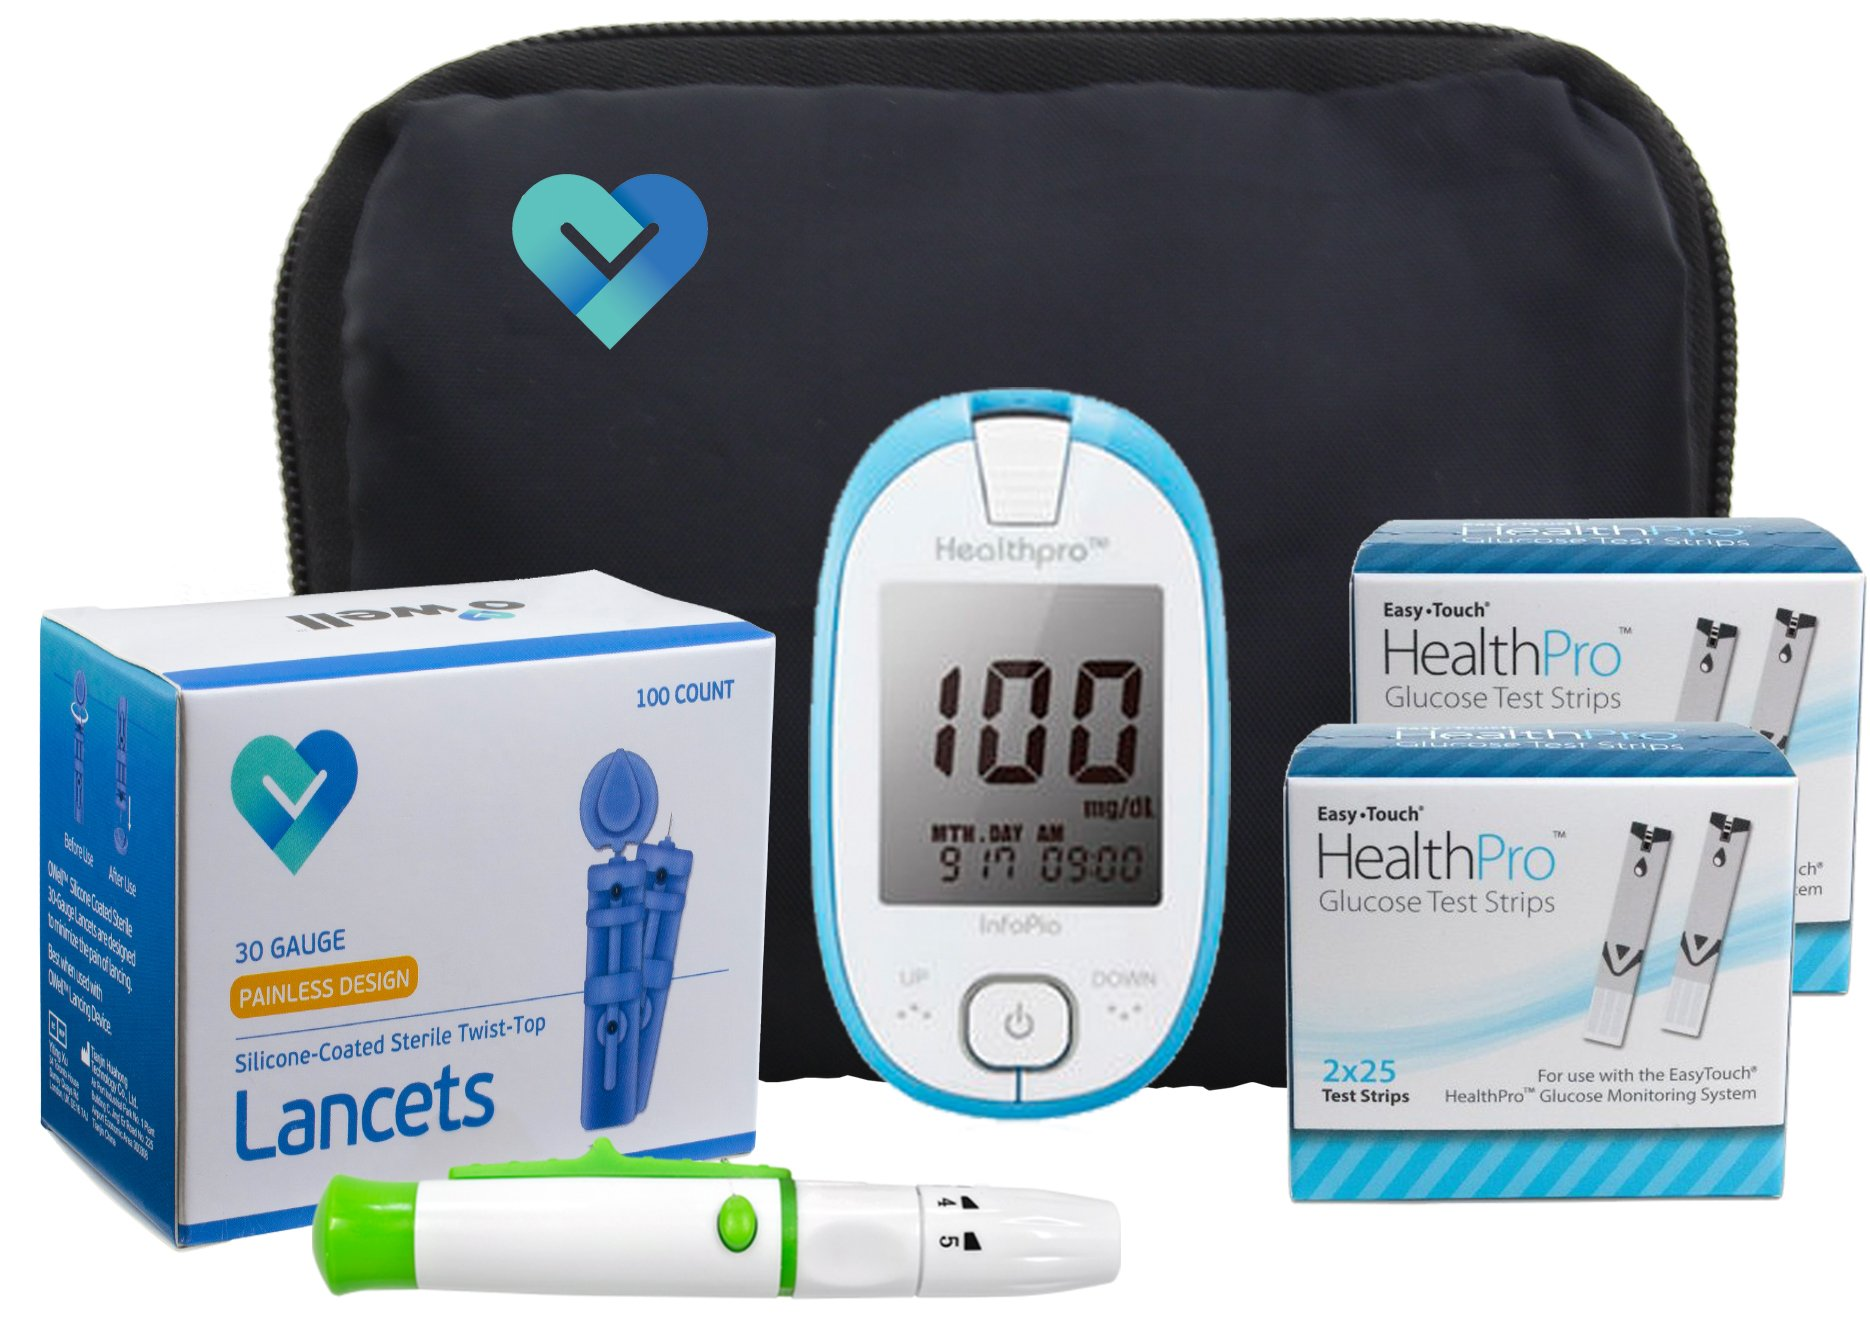 Easy Touch Health Pro Diabetes Testing Kit, 100 Count | Easy Touch Health Pro Meter, 100 Health Pro Blood Glucose Test Strips, 100 Lancets, Lancing Device, Manuals, Log Books & Carry Case